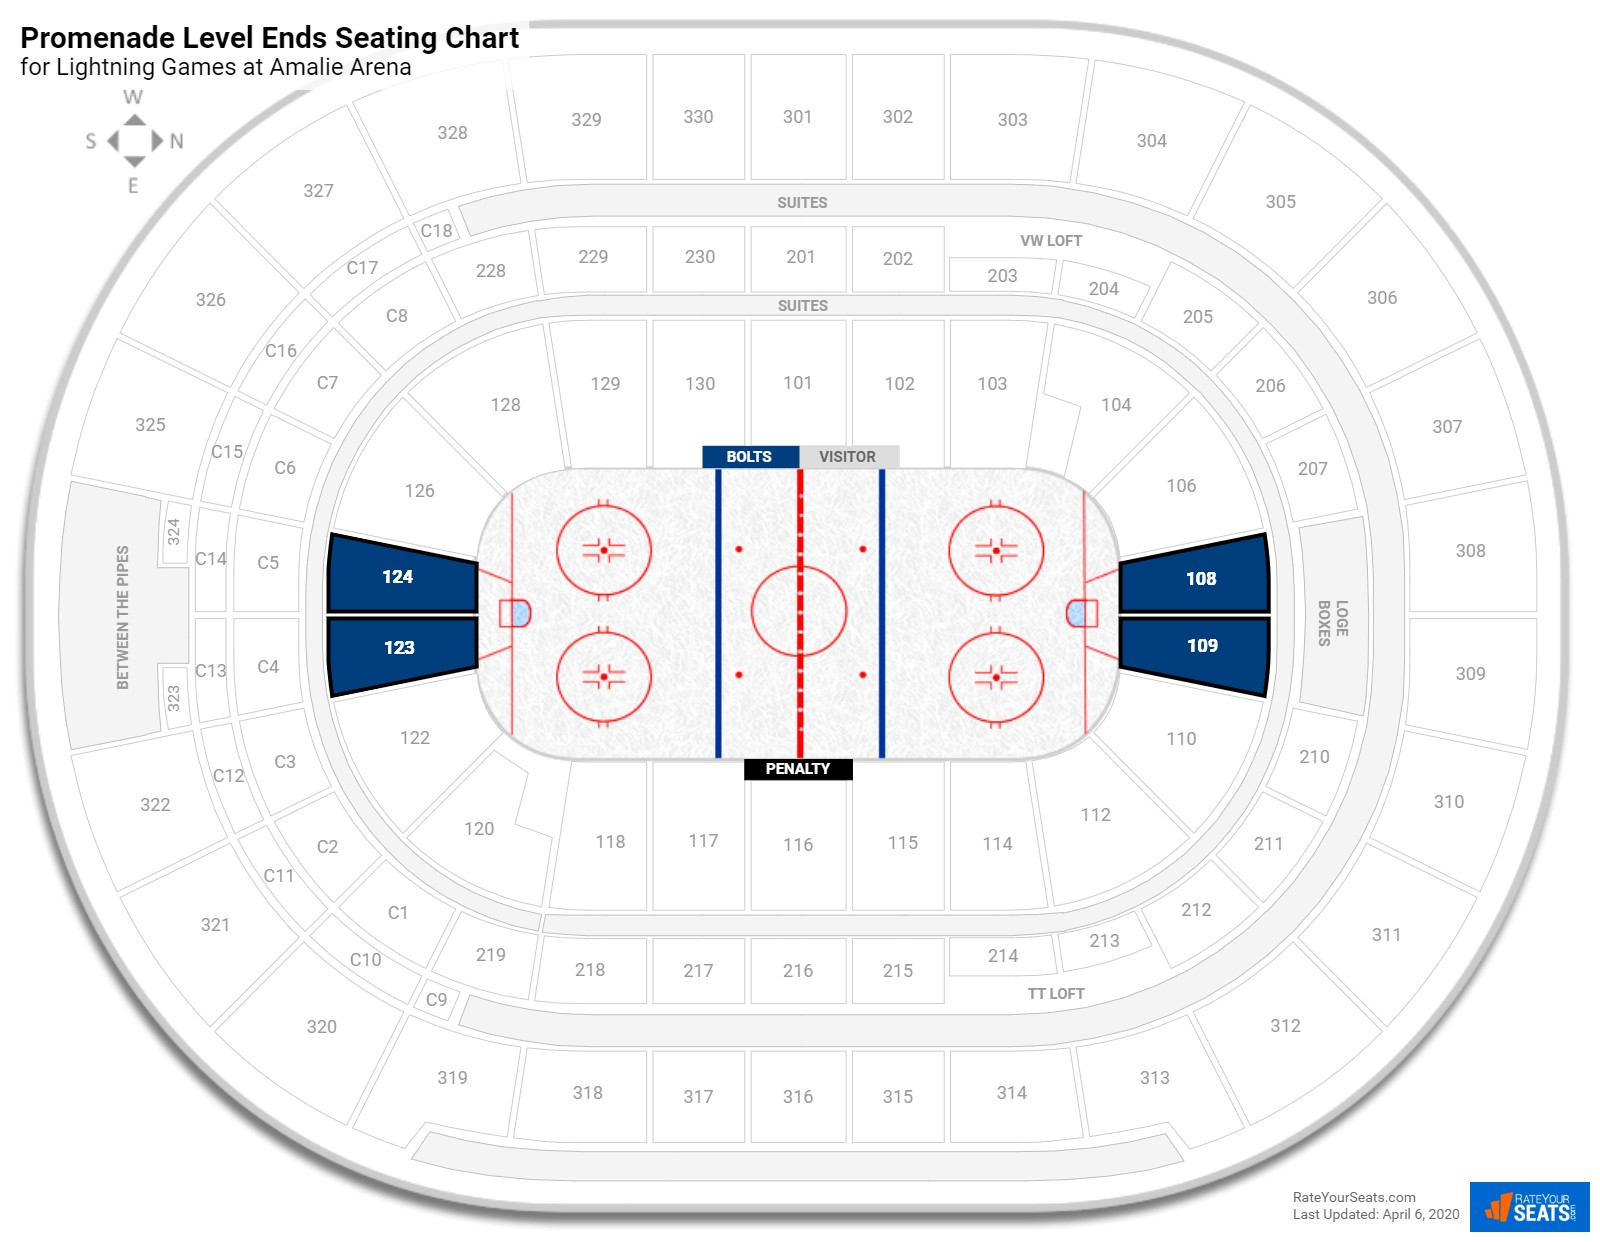 Amalie Arena Promenade Level Behind the Net seating chart